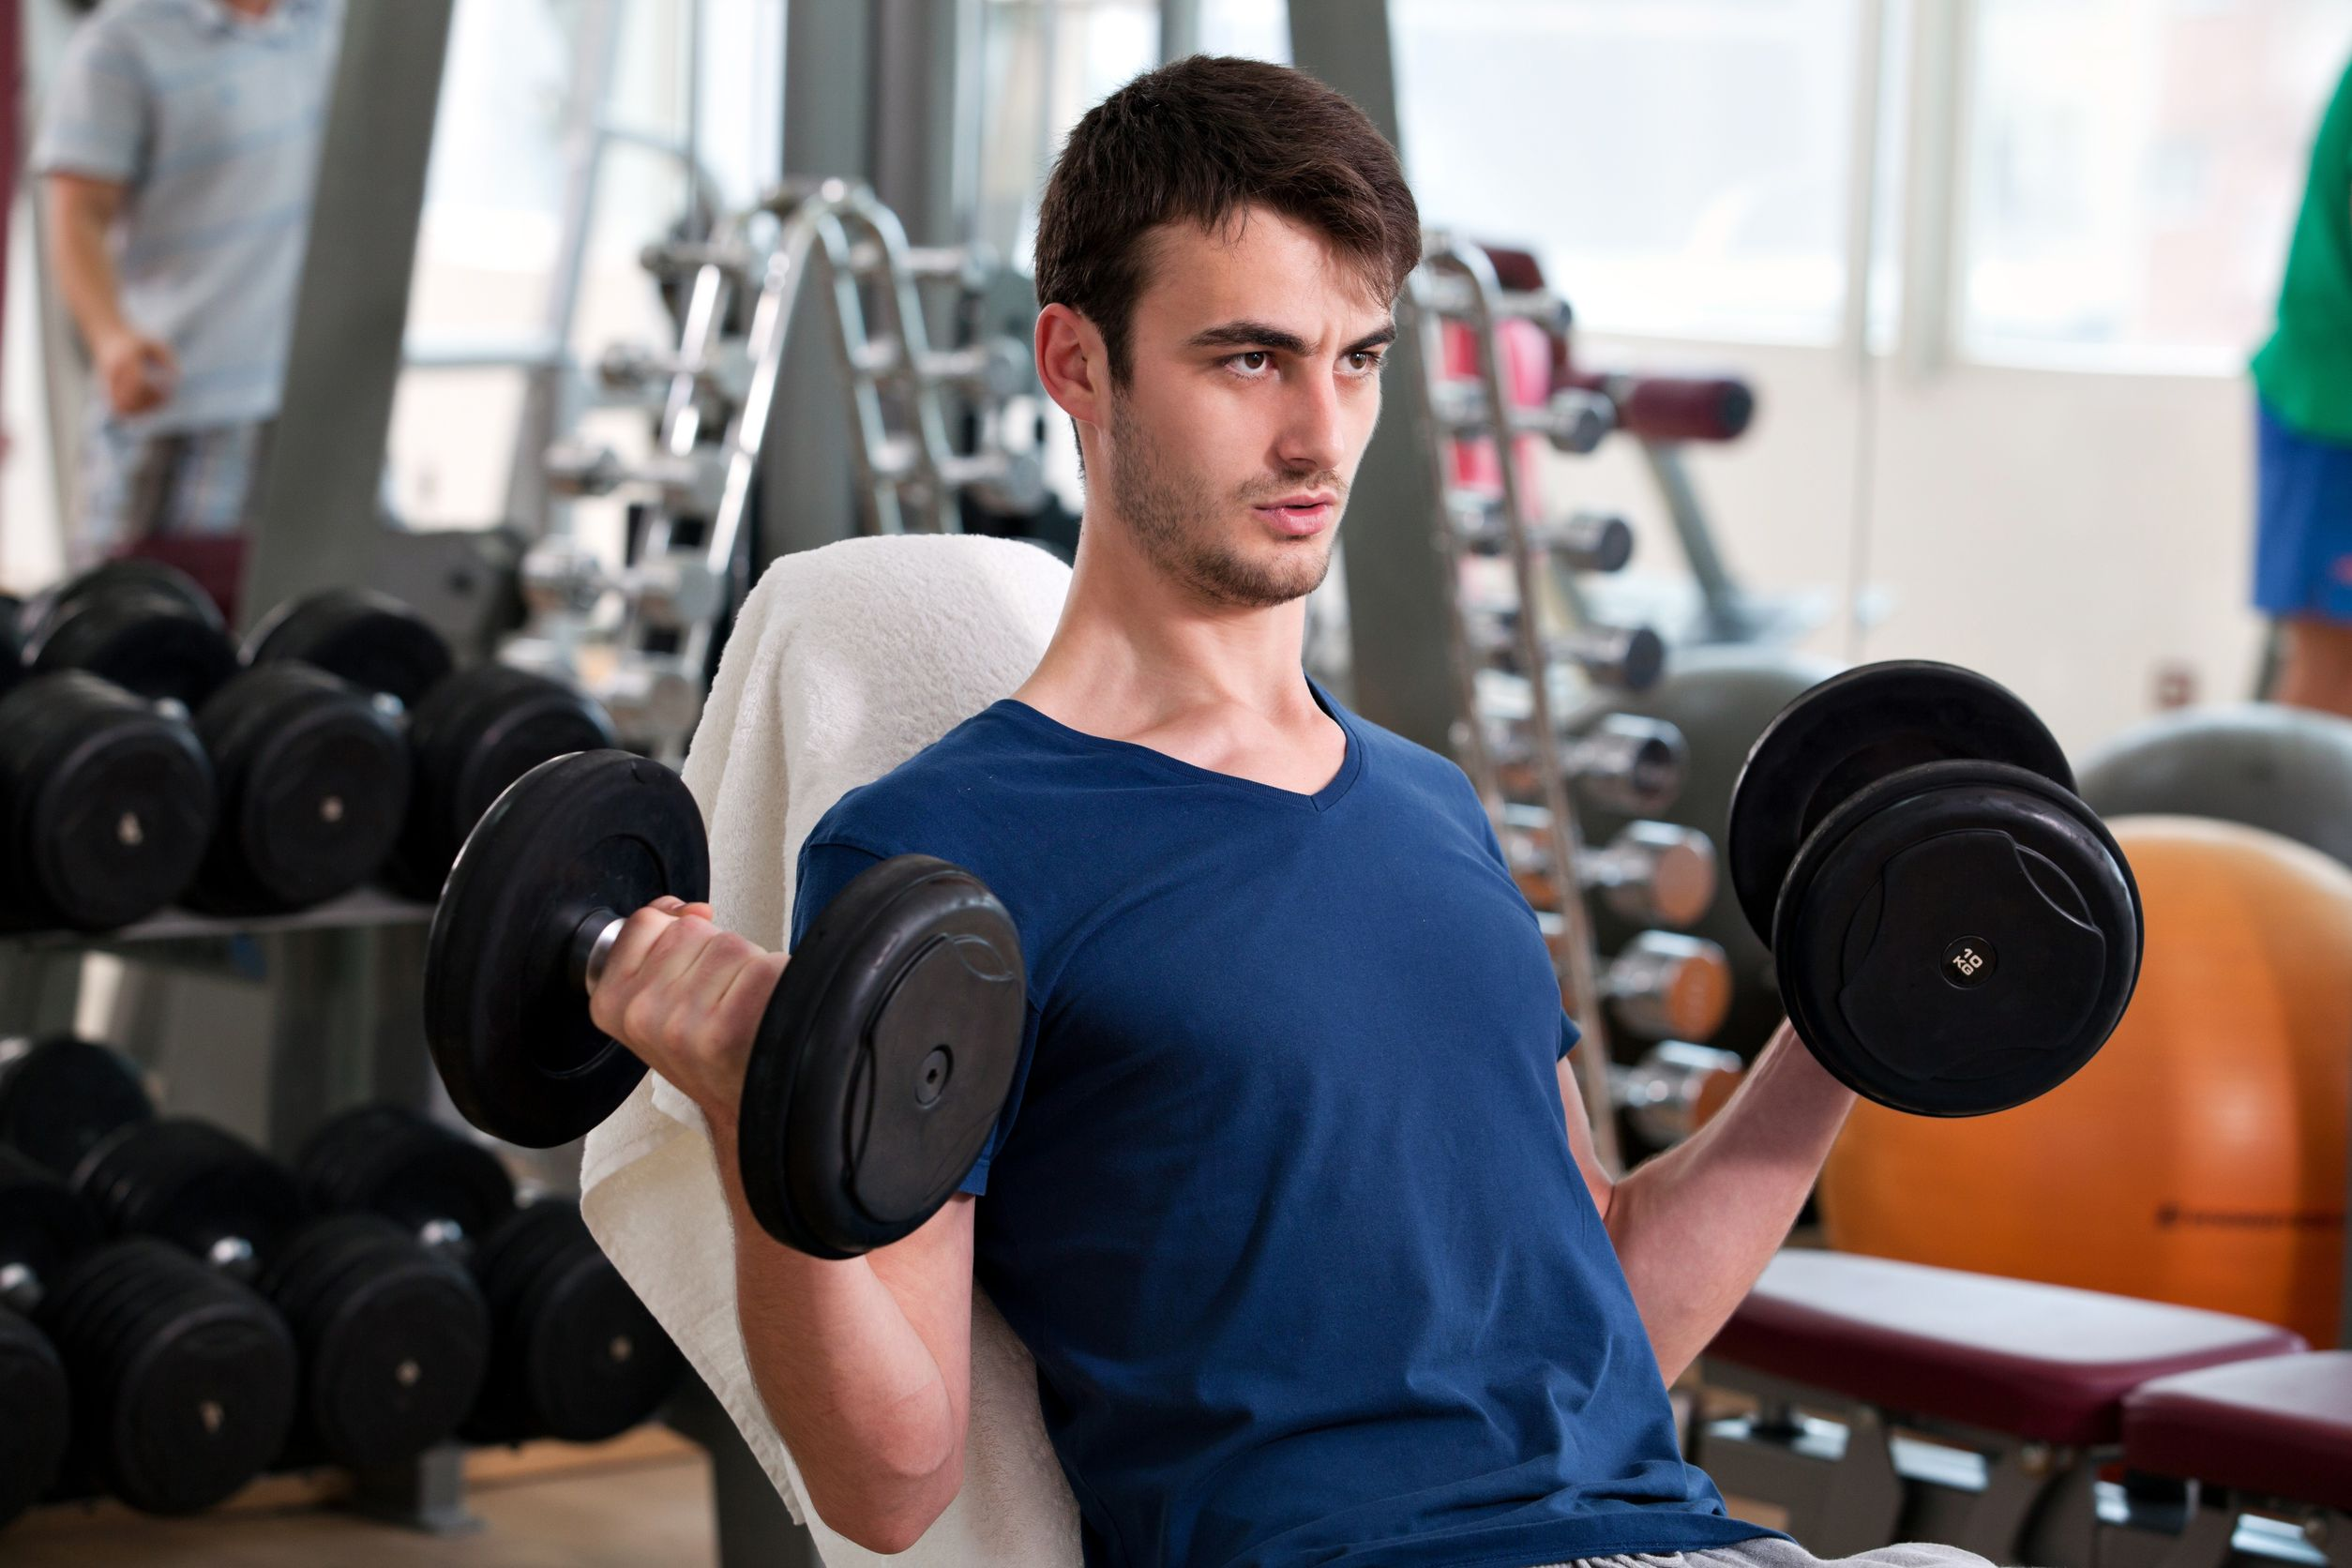 Student Working Out Neither Intimidating Nor Intimidated